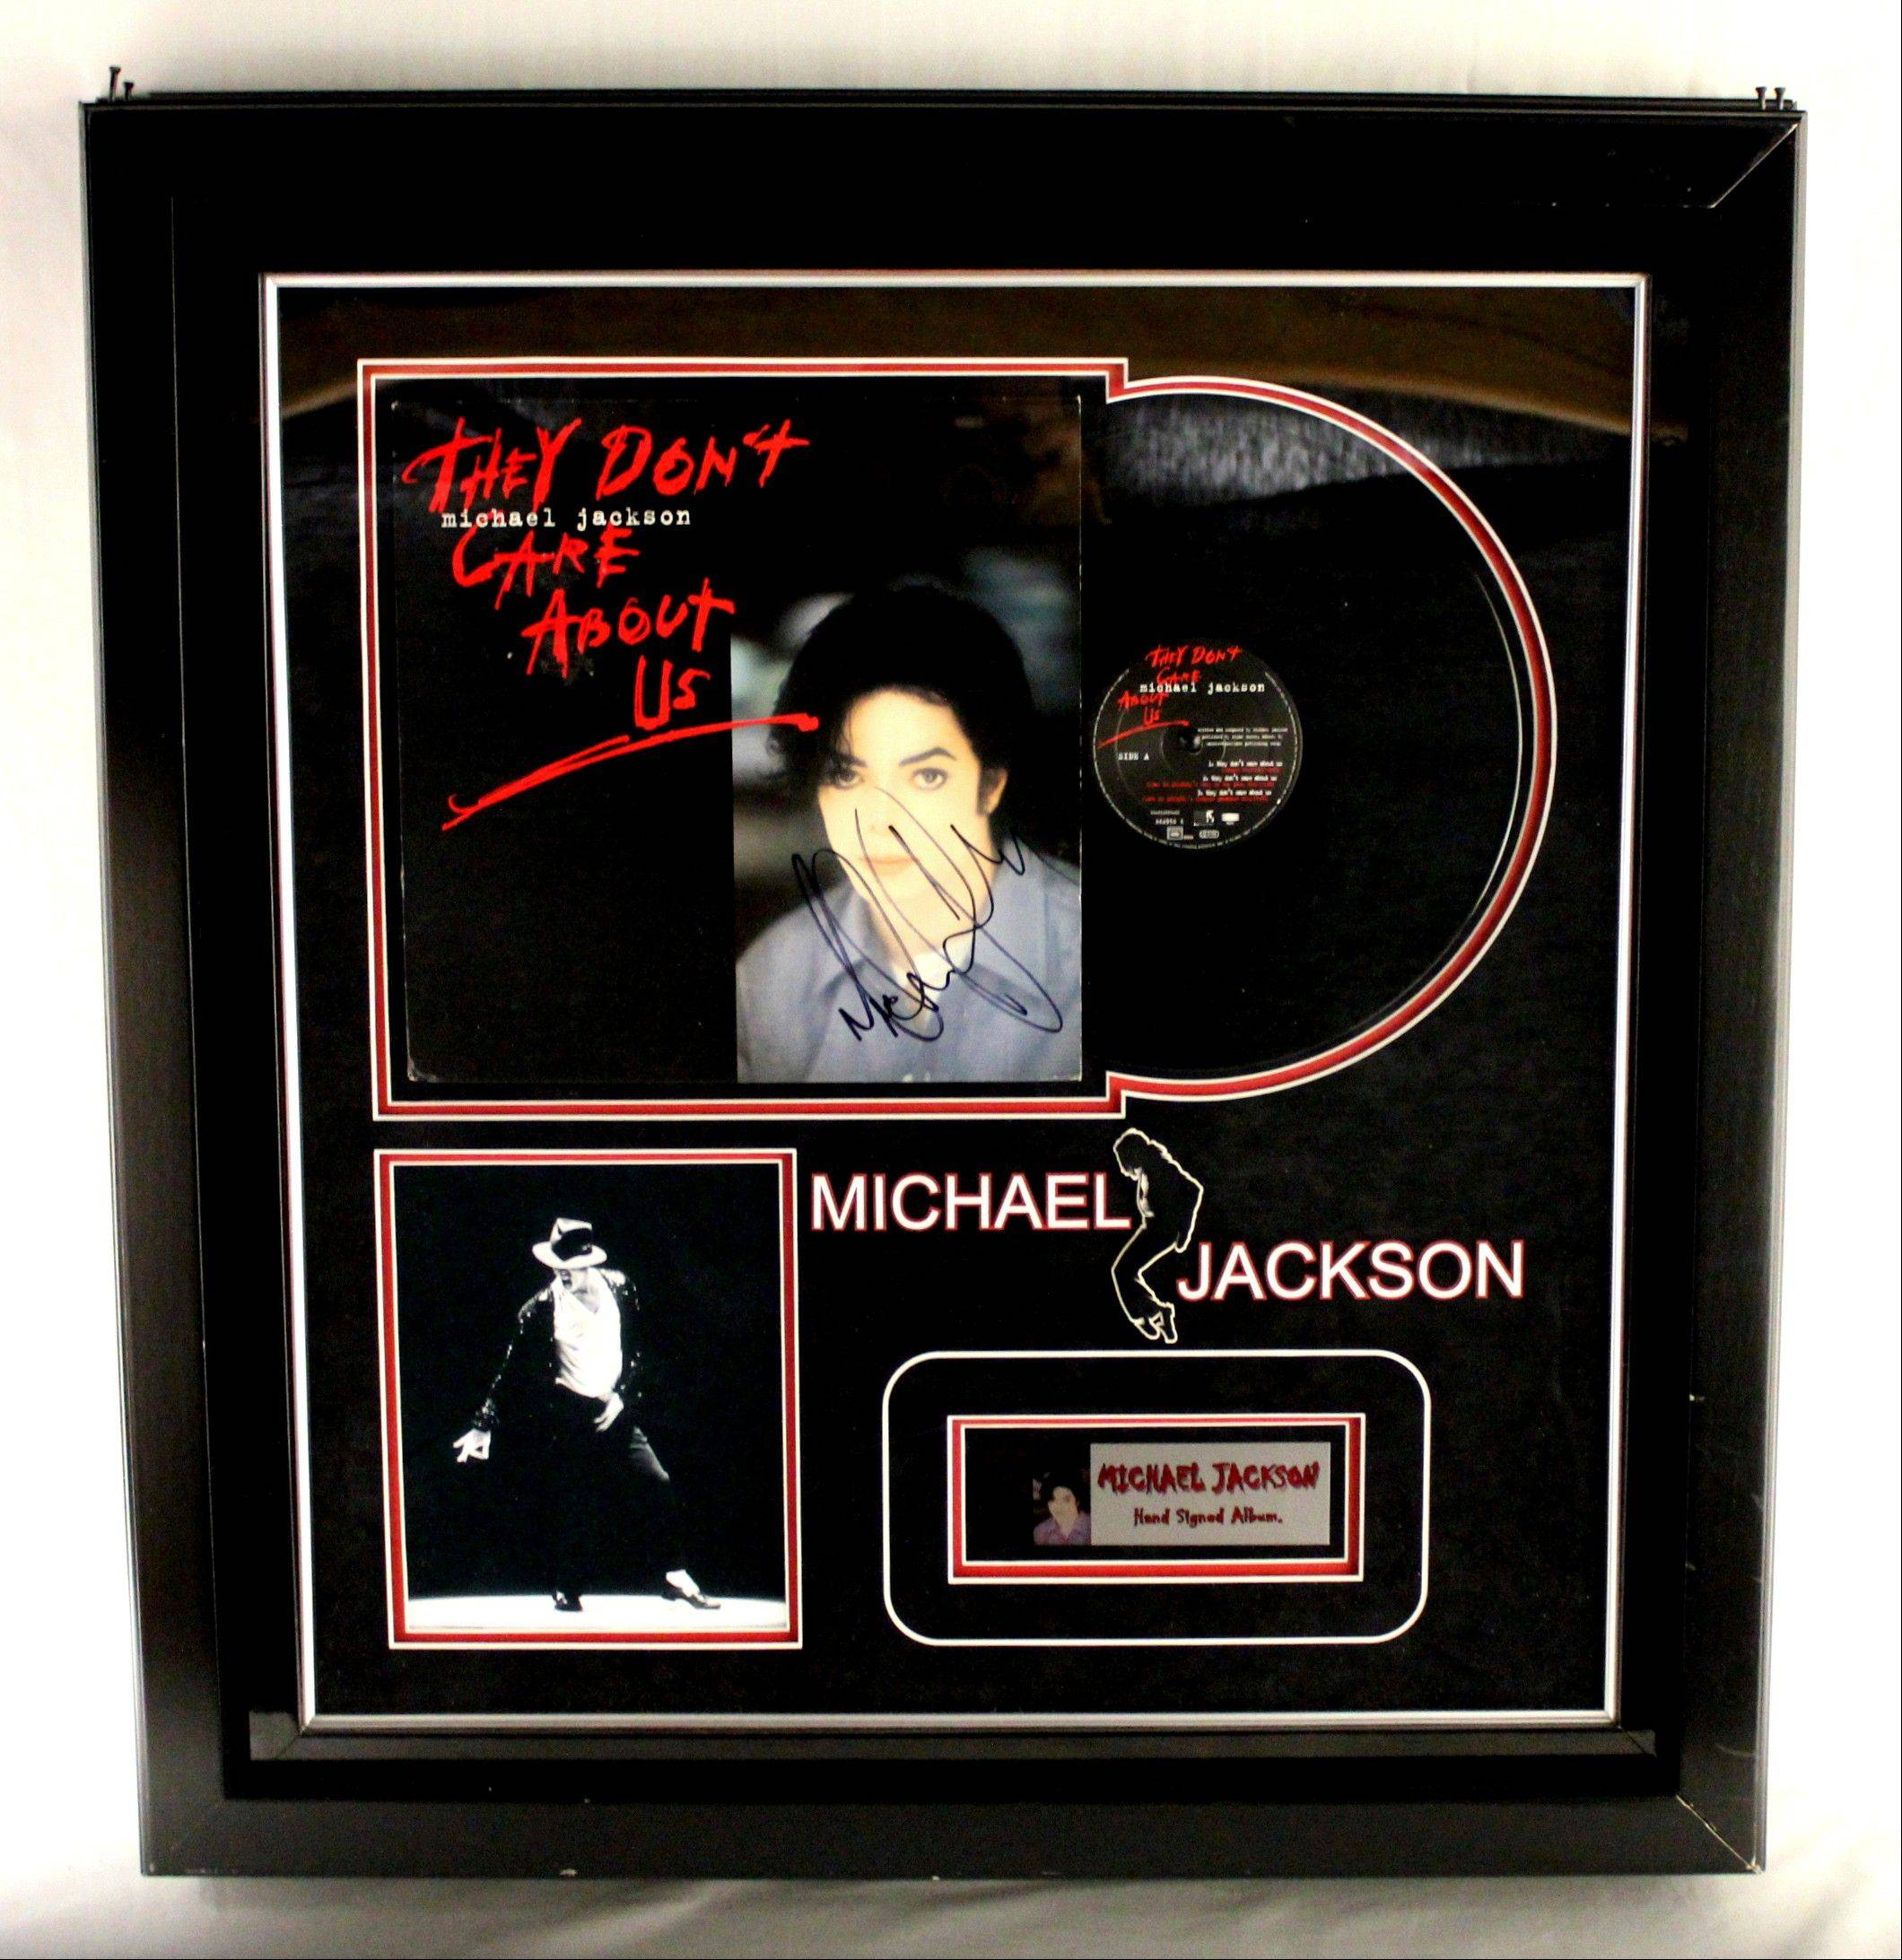 "This undated photo provided by Texas-based Gaston & Sheehan Auctioneers, Inc. shows a Michael Jackson autographed record album titled ""They Don't Care About Us"" that once belonged to former Illinois Congressman Jesse Jackson Jr. It is among the items the U.S. Marshals Service started selling in an online auction Tuesday in its attempt to recoup part of the $750,000 in campaign funds the Chicago Democrat and his wife illegally spent."